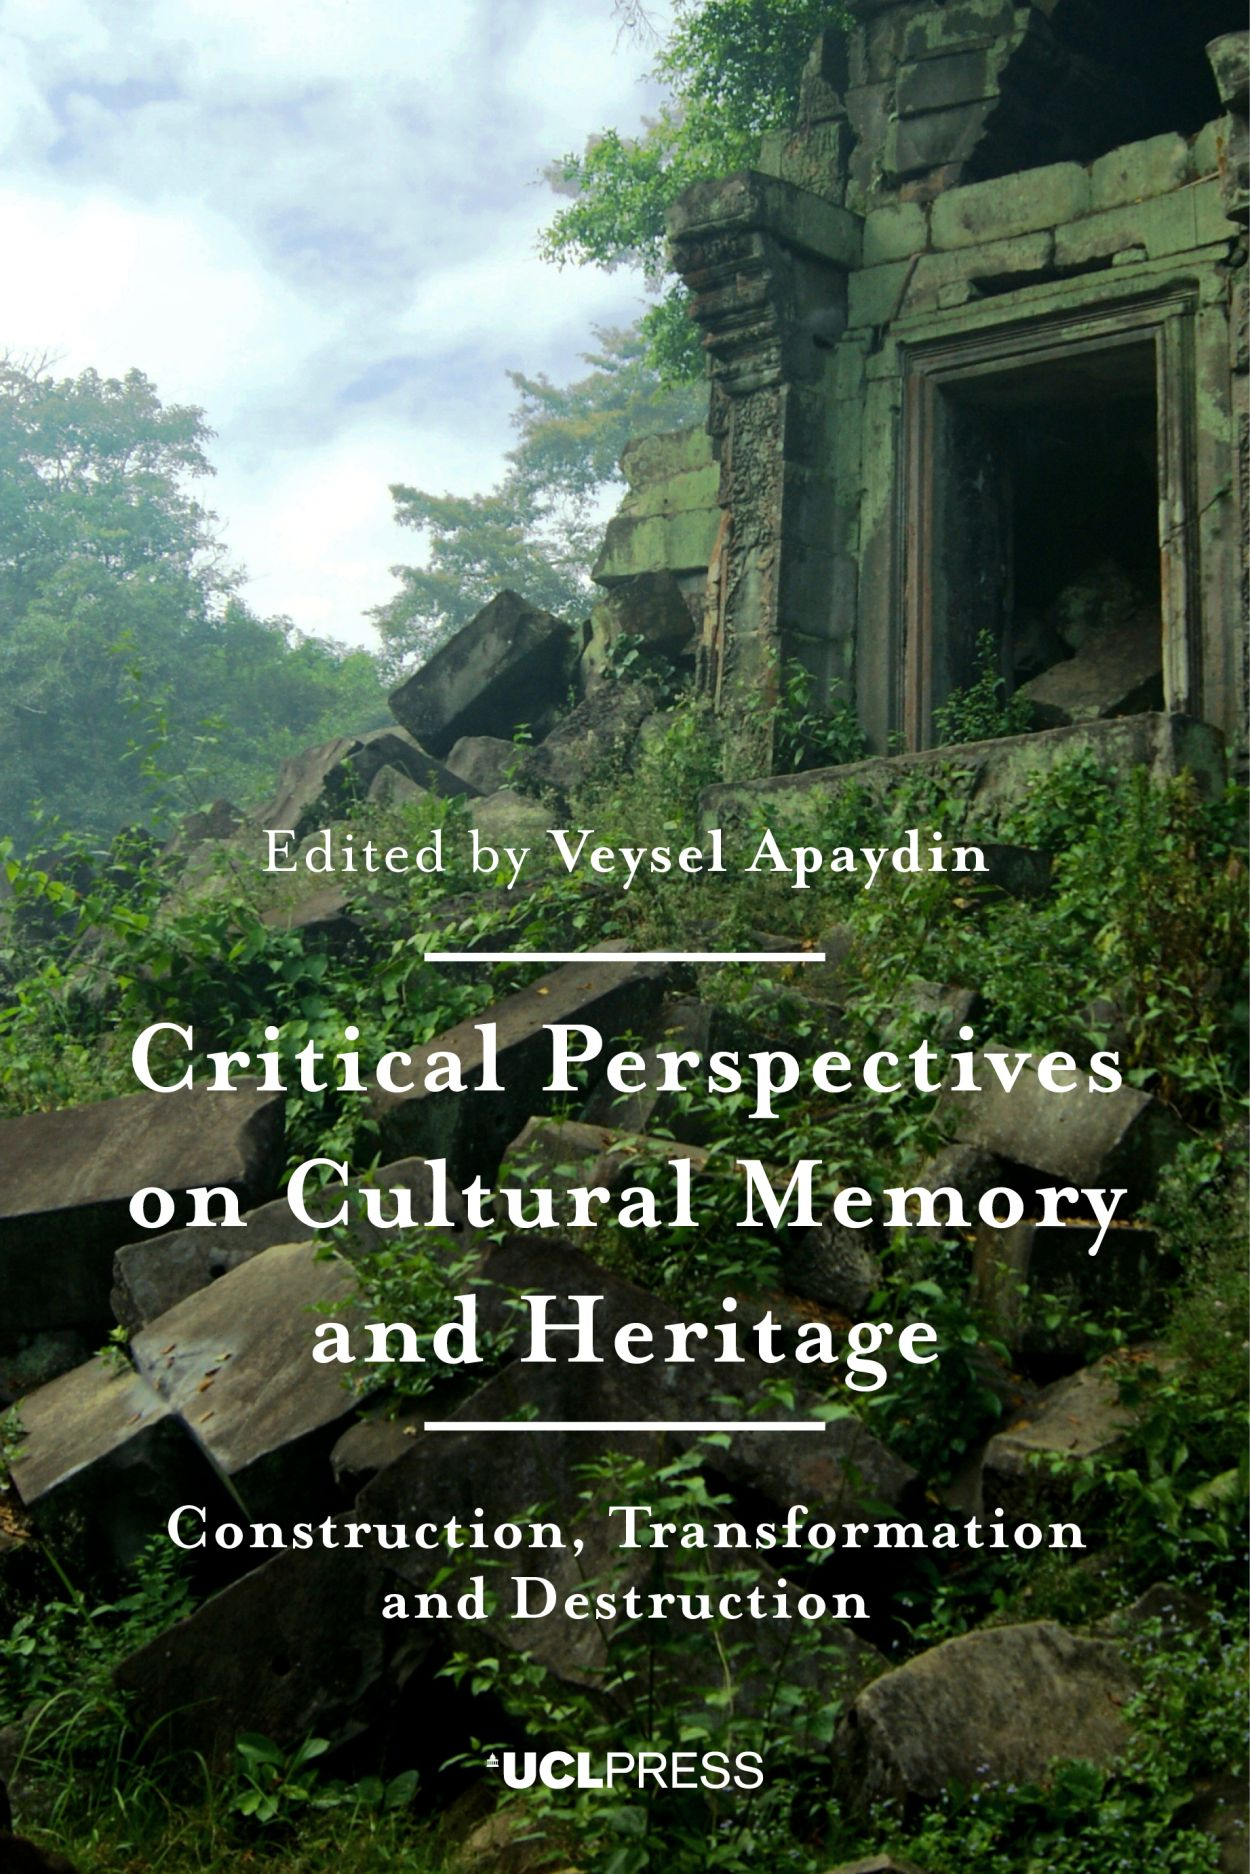 Critical Perspectives on Cultural Memory and Heritage: Construction, Transformation and Destruction